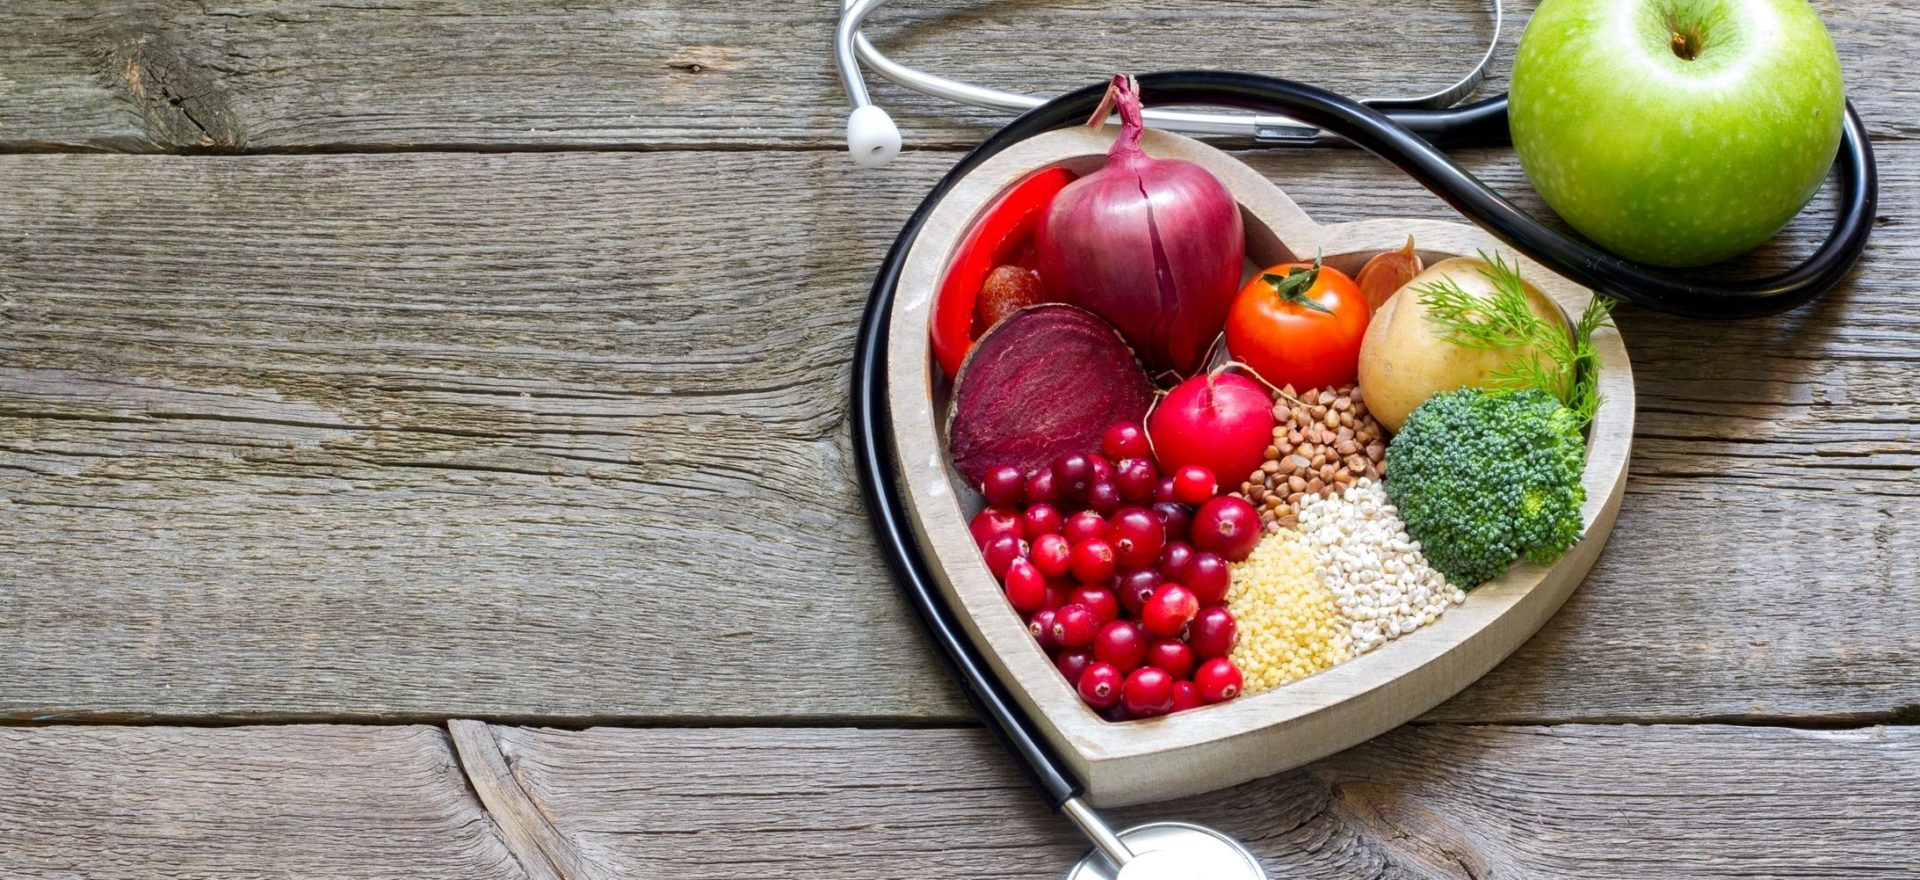 Life to the Fullest: Picture of wood background with heart-shaped container filled with different colorful fruits and vegetables surrounded by a stethoscope